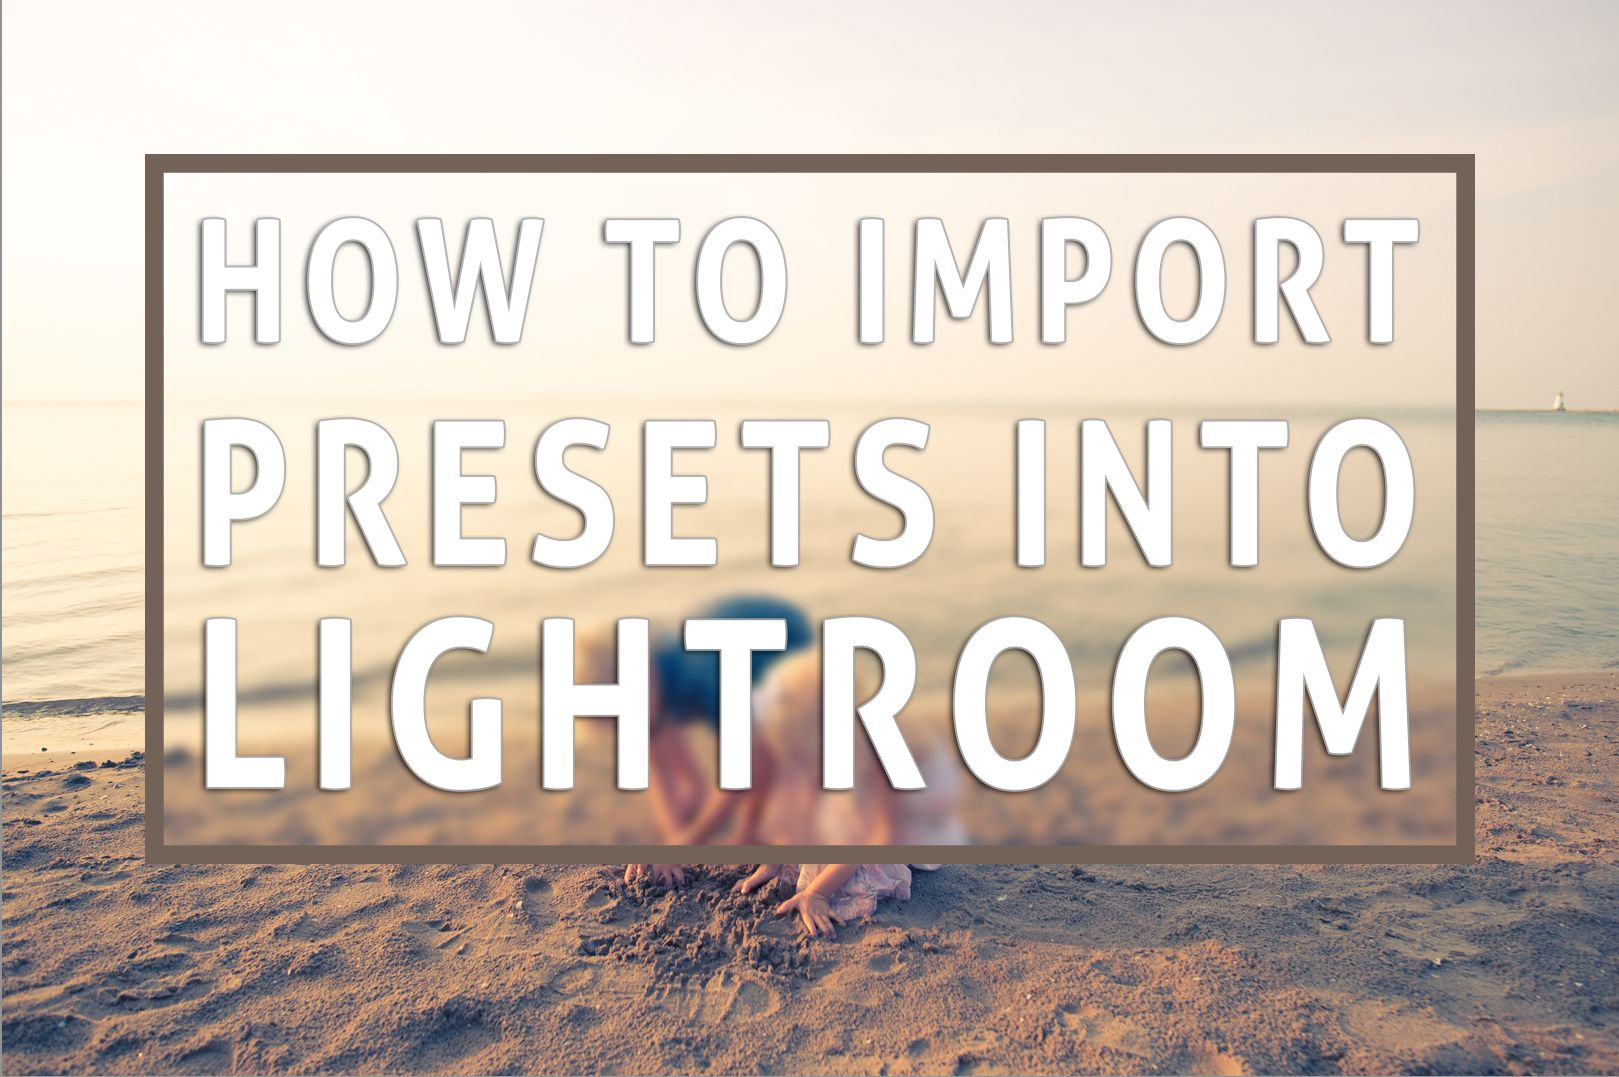 How to import presets into lightroom (With images) Best